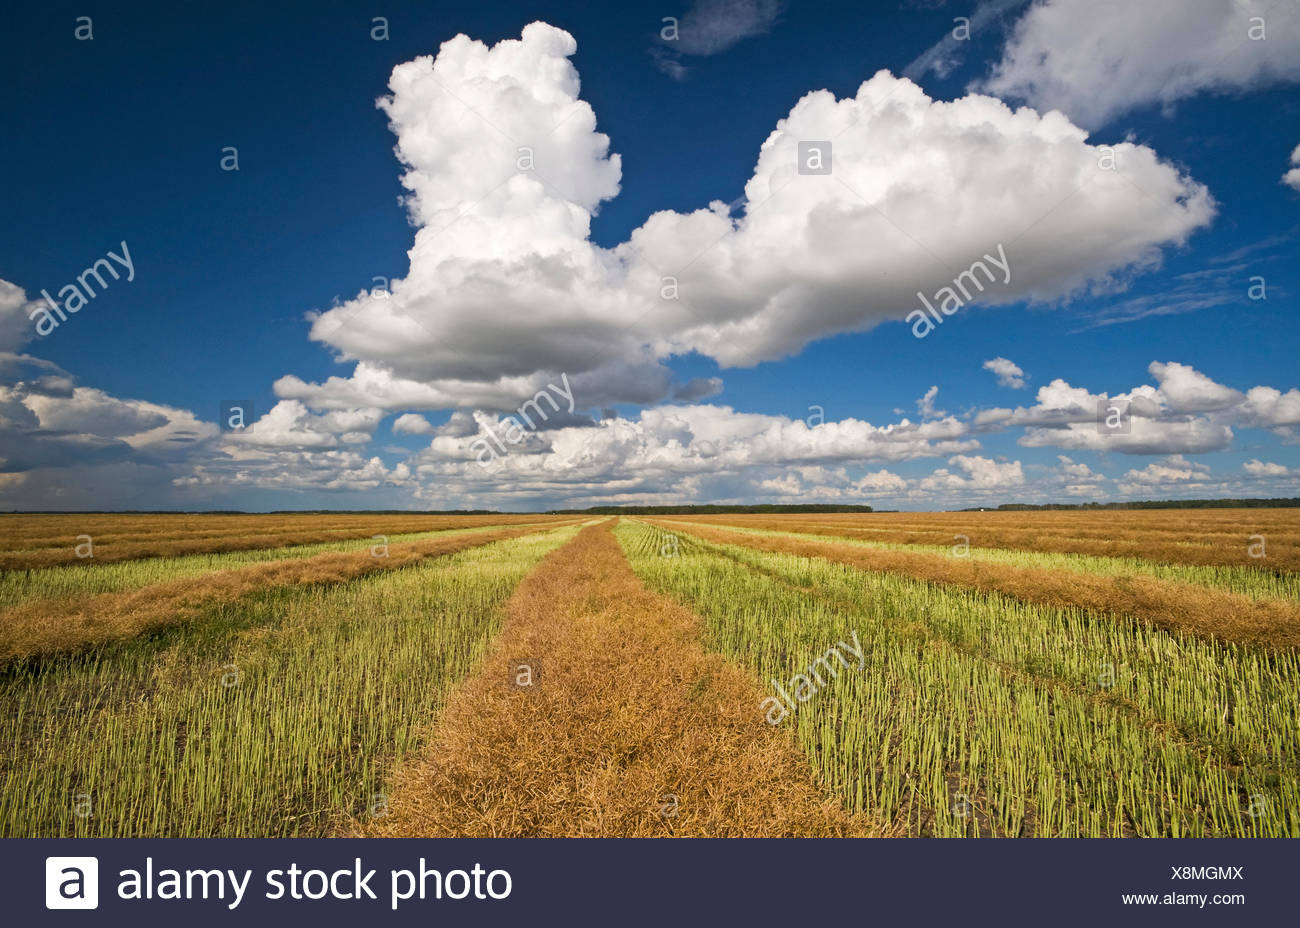 swathed, harvest ready canola with developing cumulonimbus cloud in the background, Manitoba, Canada - Stock Image